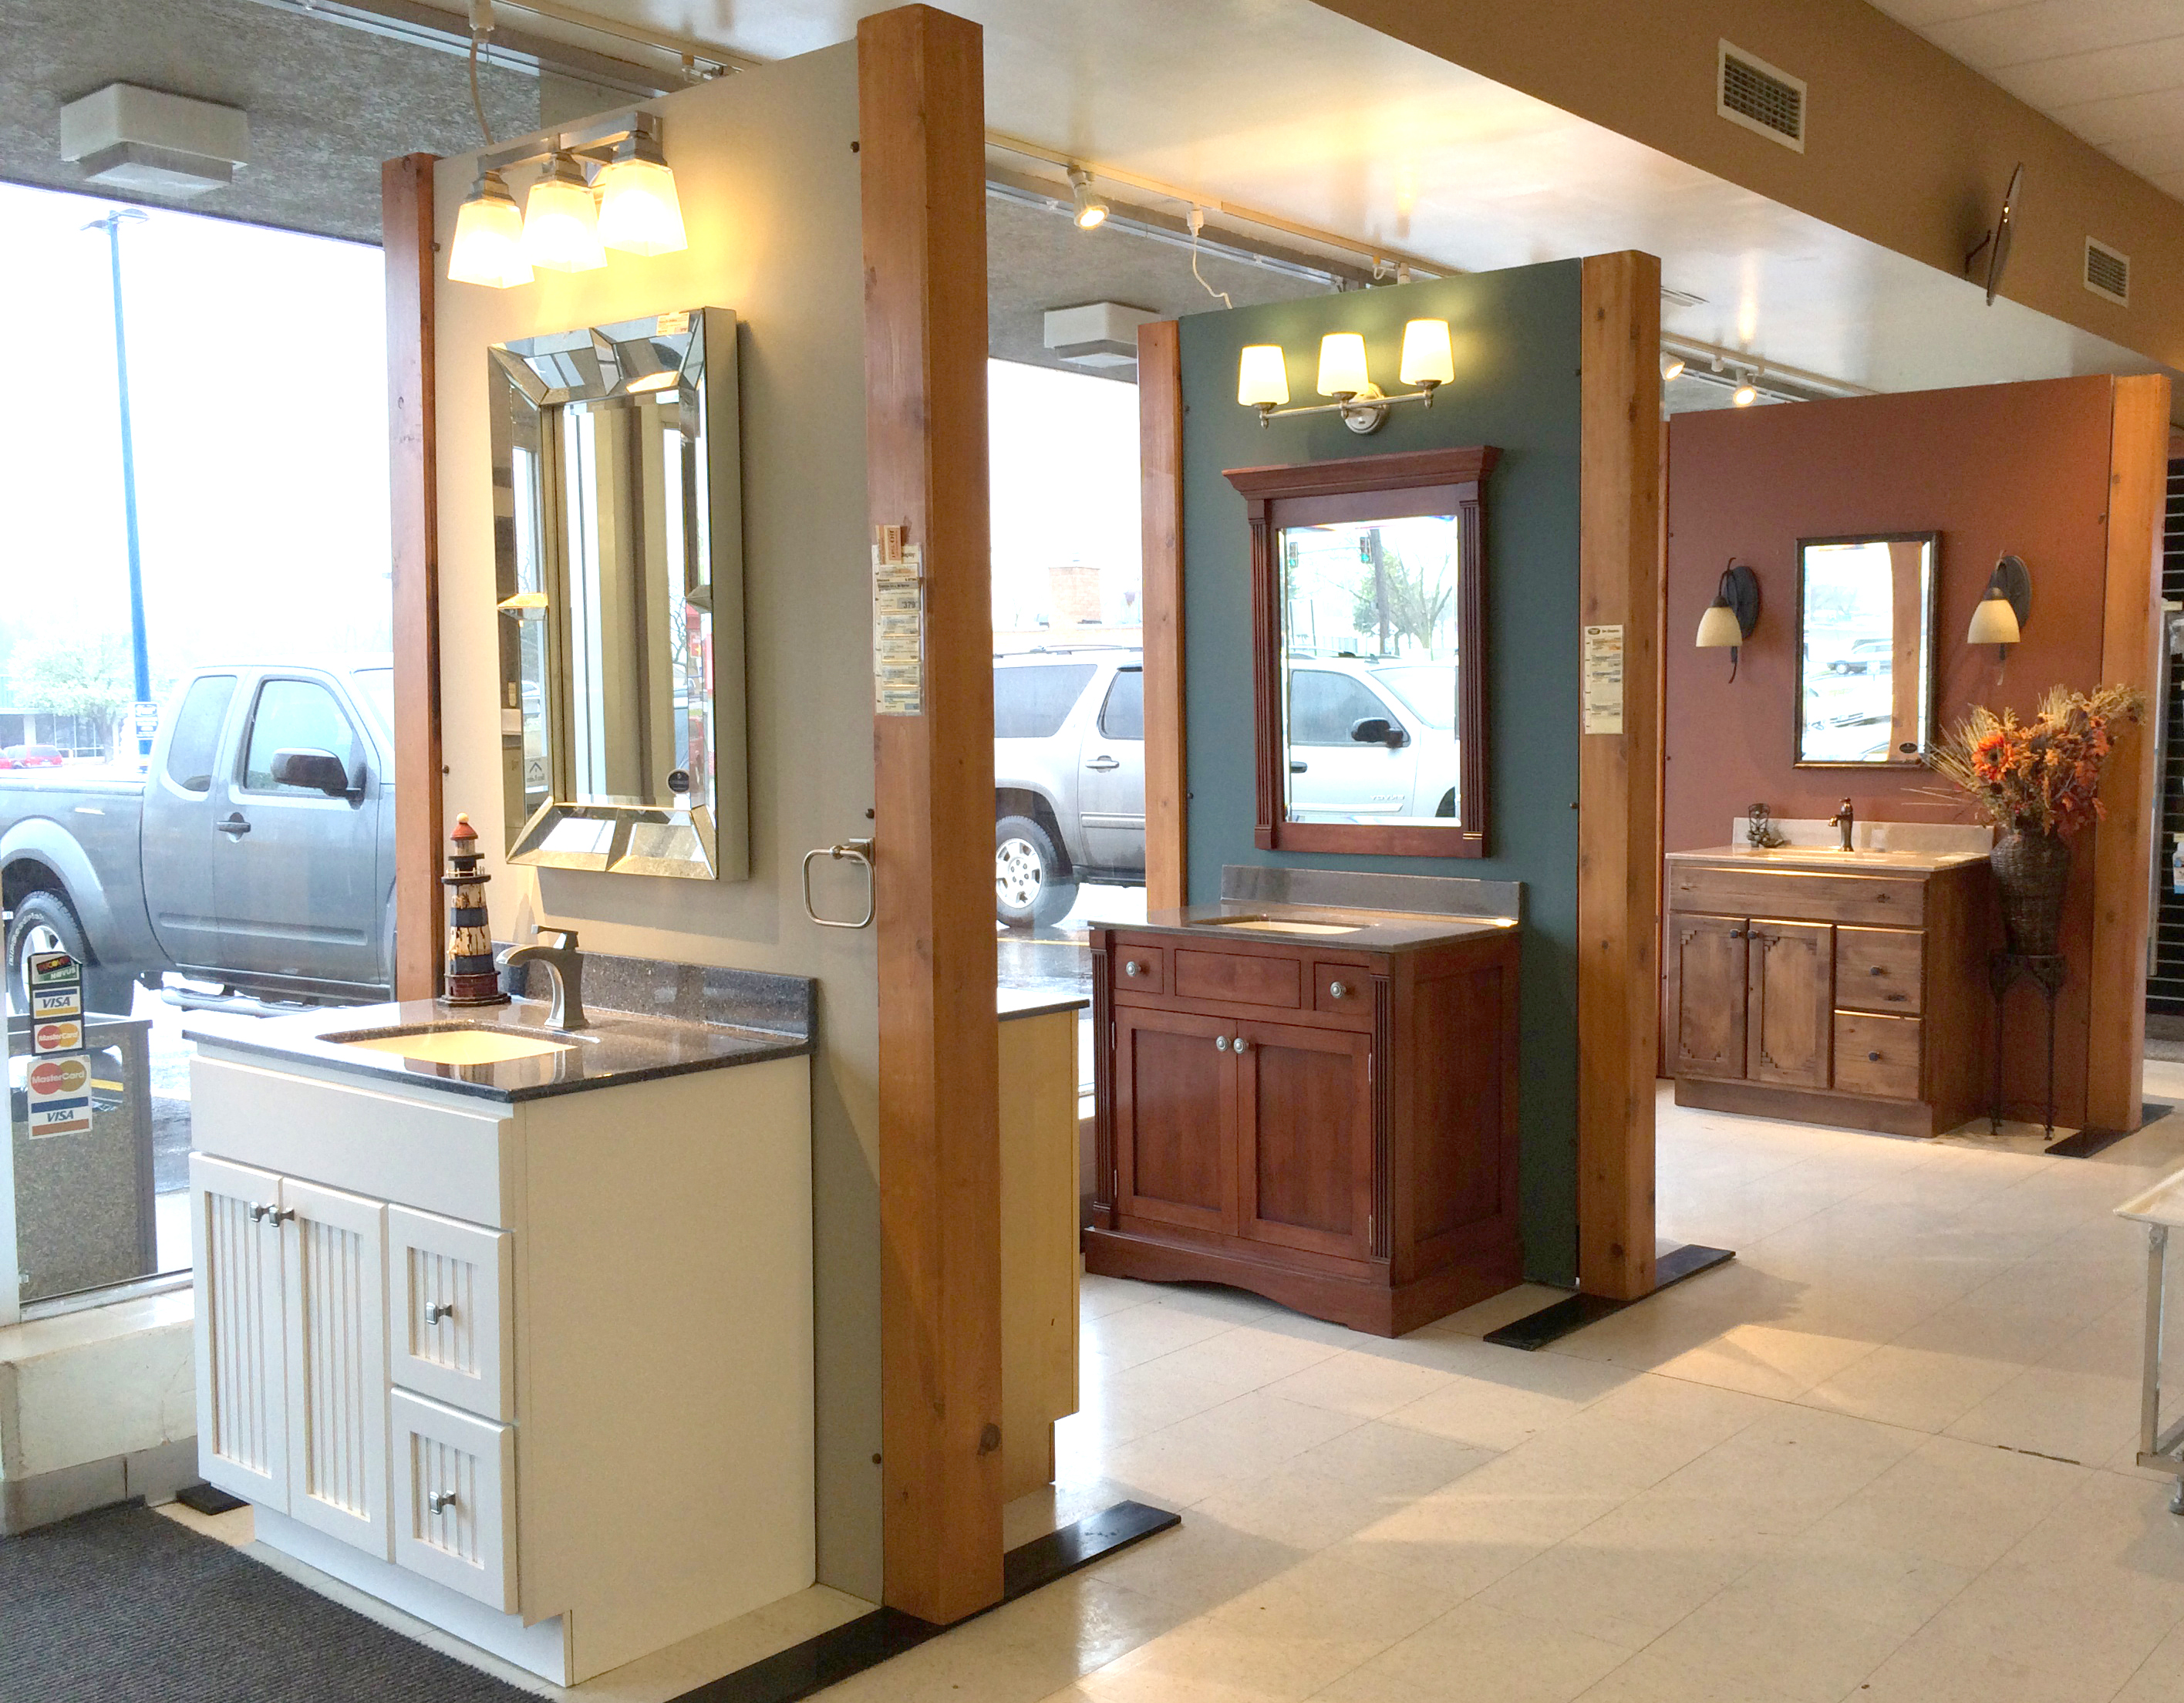 Bathroom Cabinets On Sale handy man | bathroom vanities: function and beauty